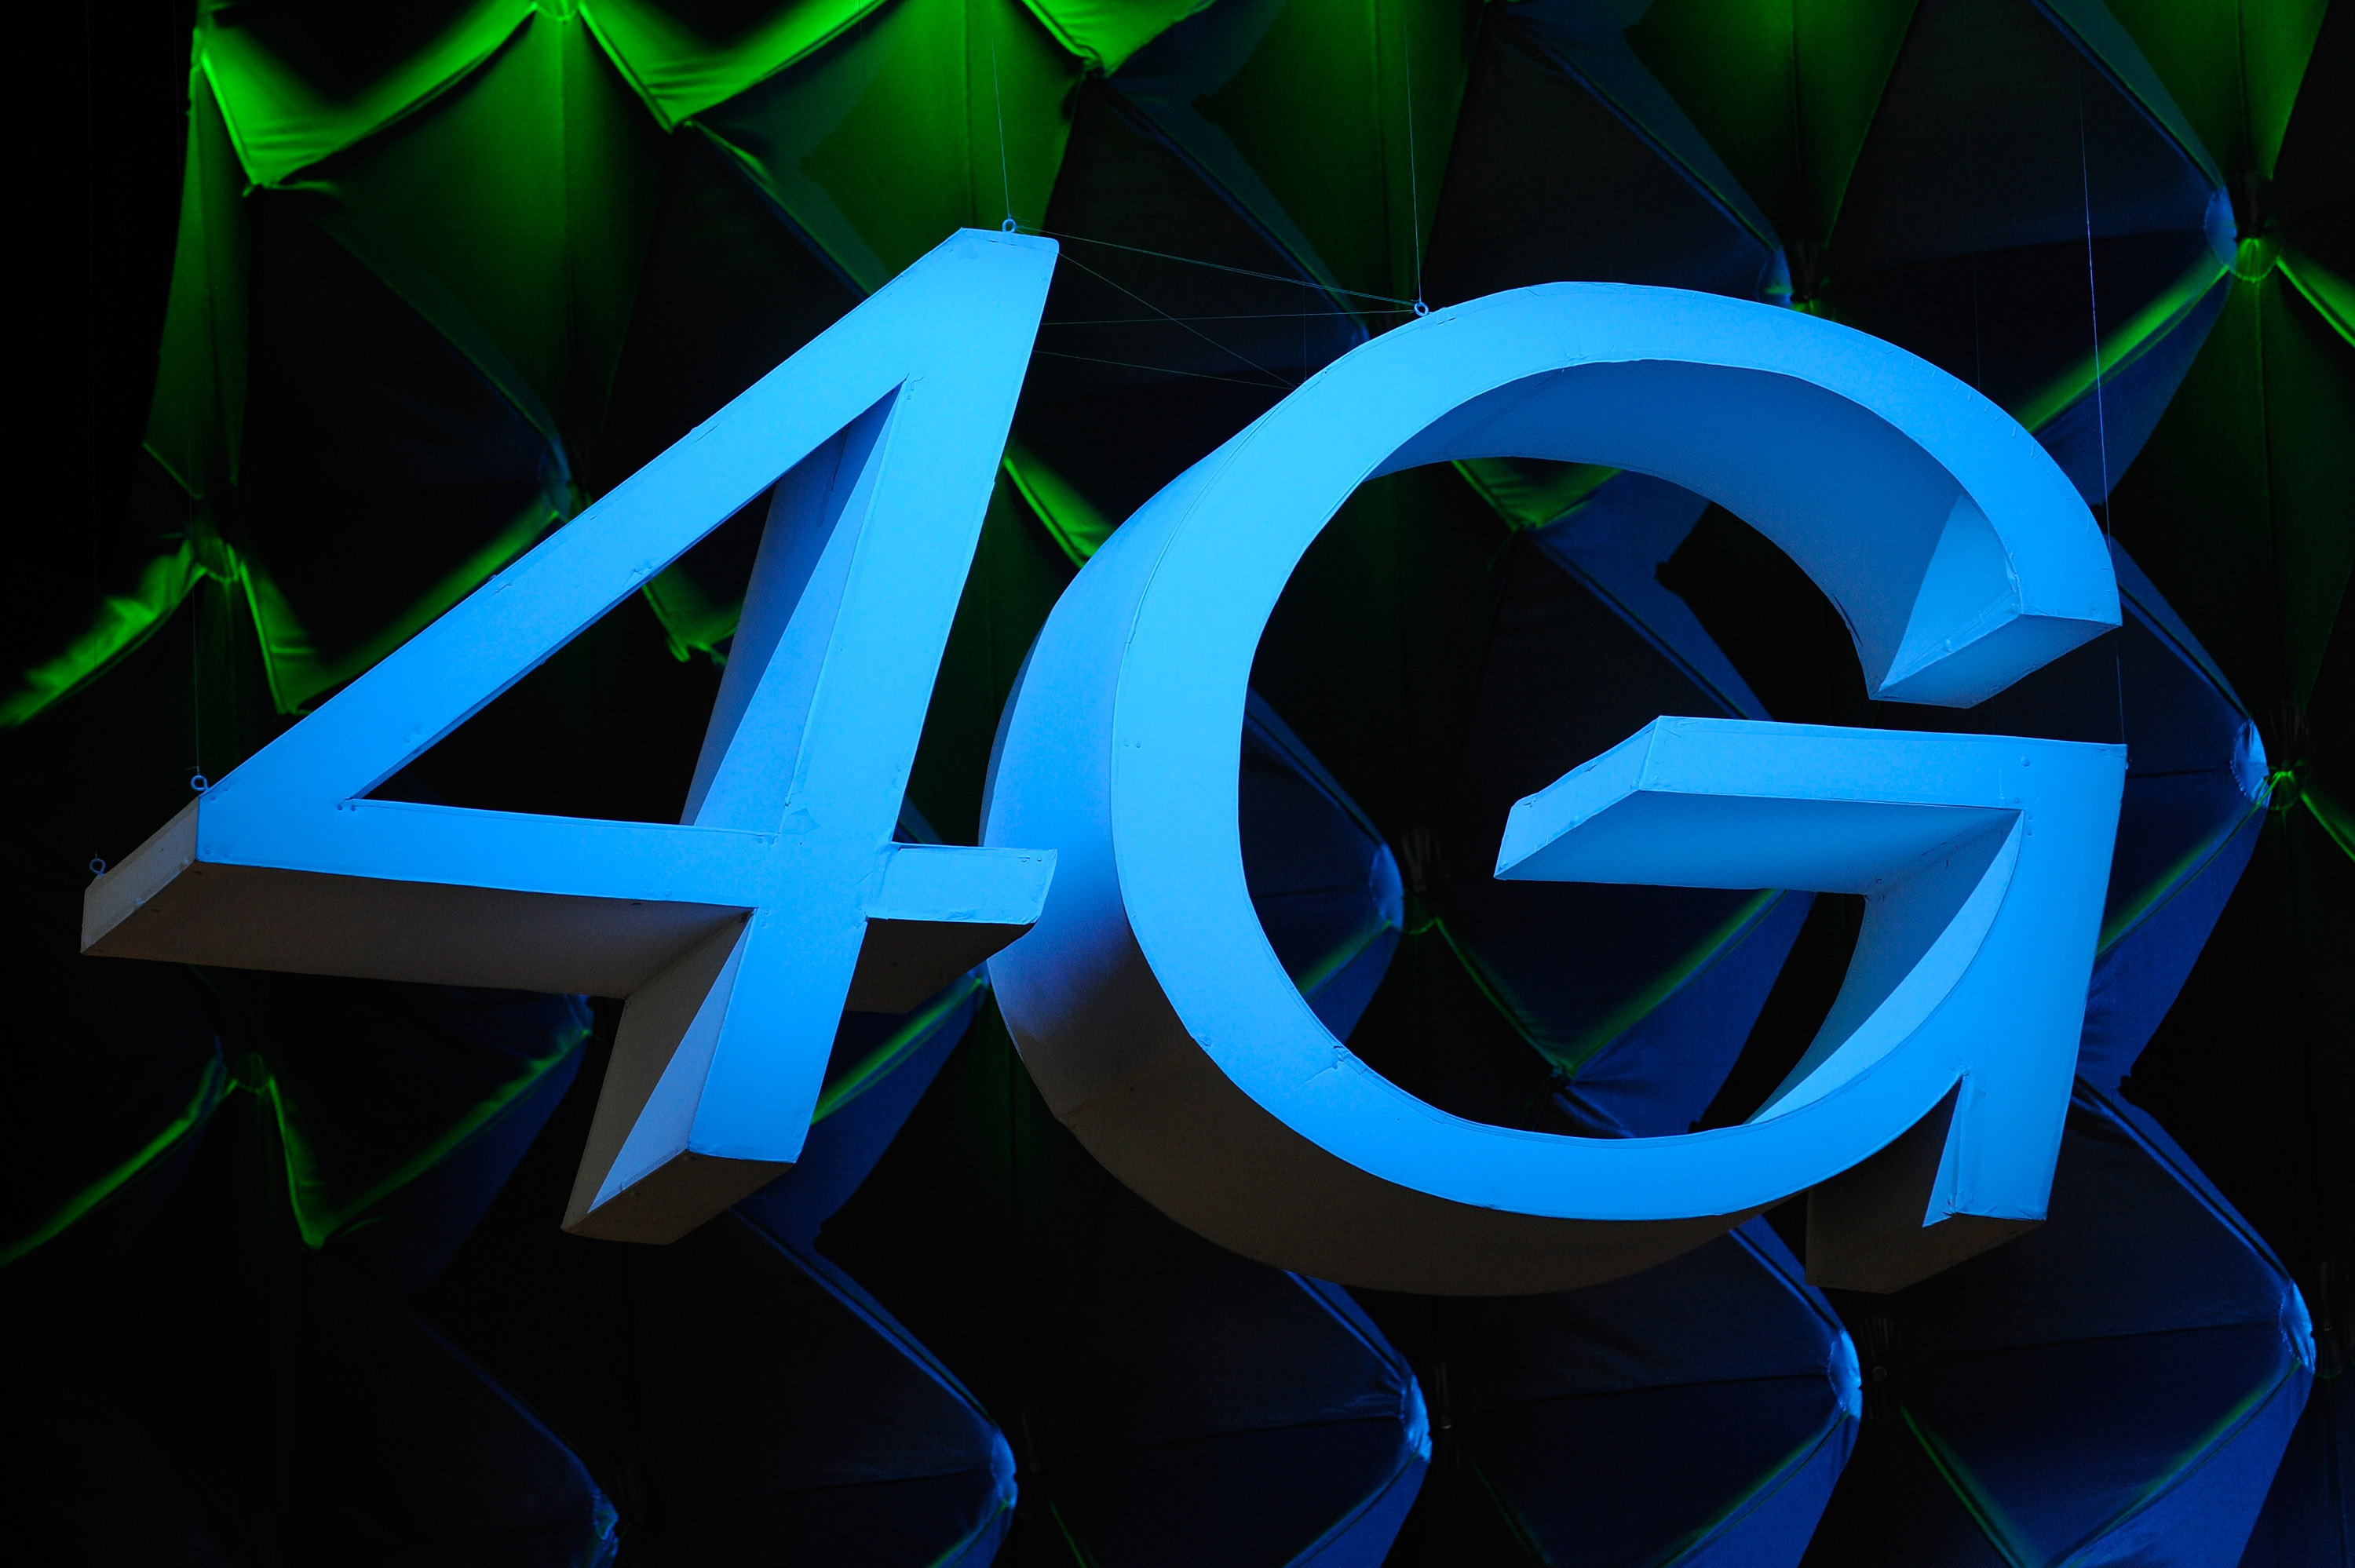 UK's four biggest mobile operators form joint venture to speed up 4G rollout